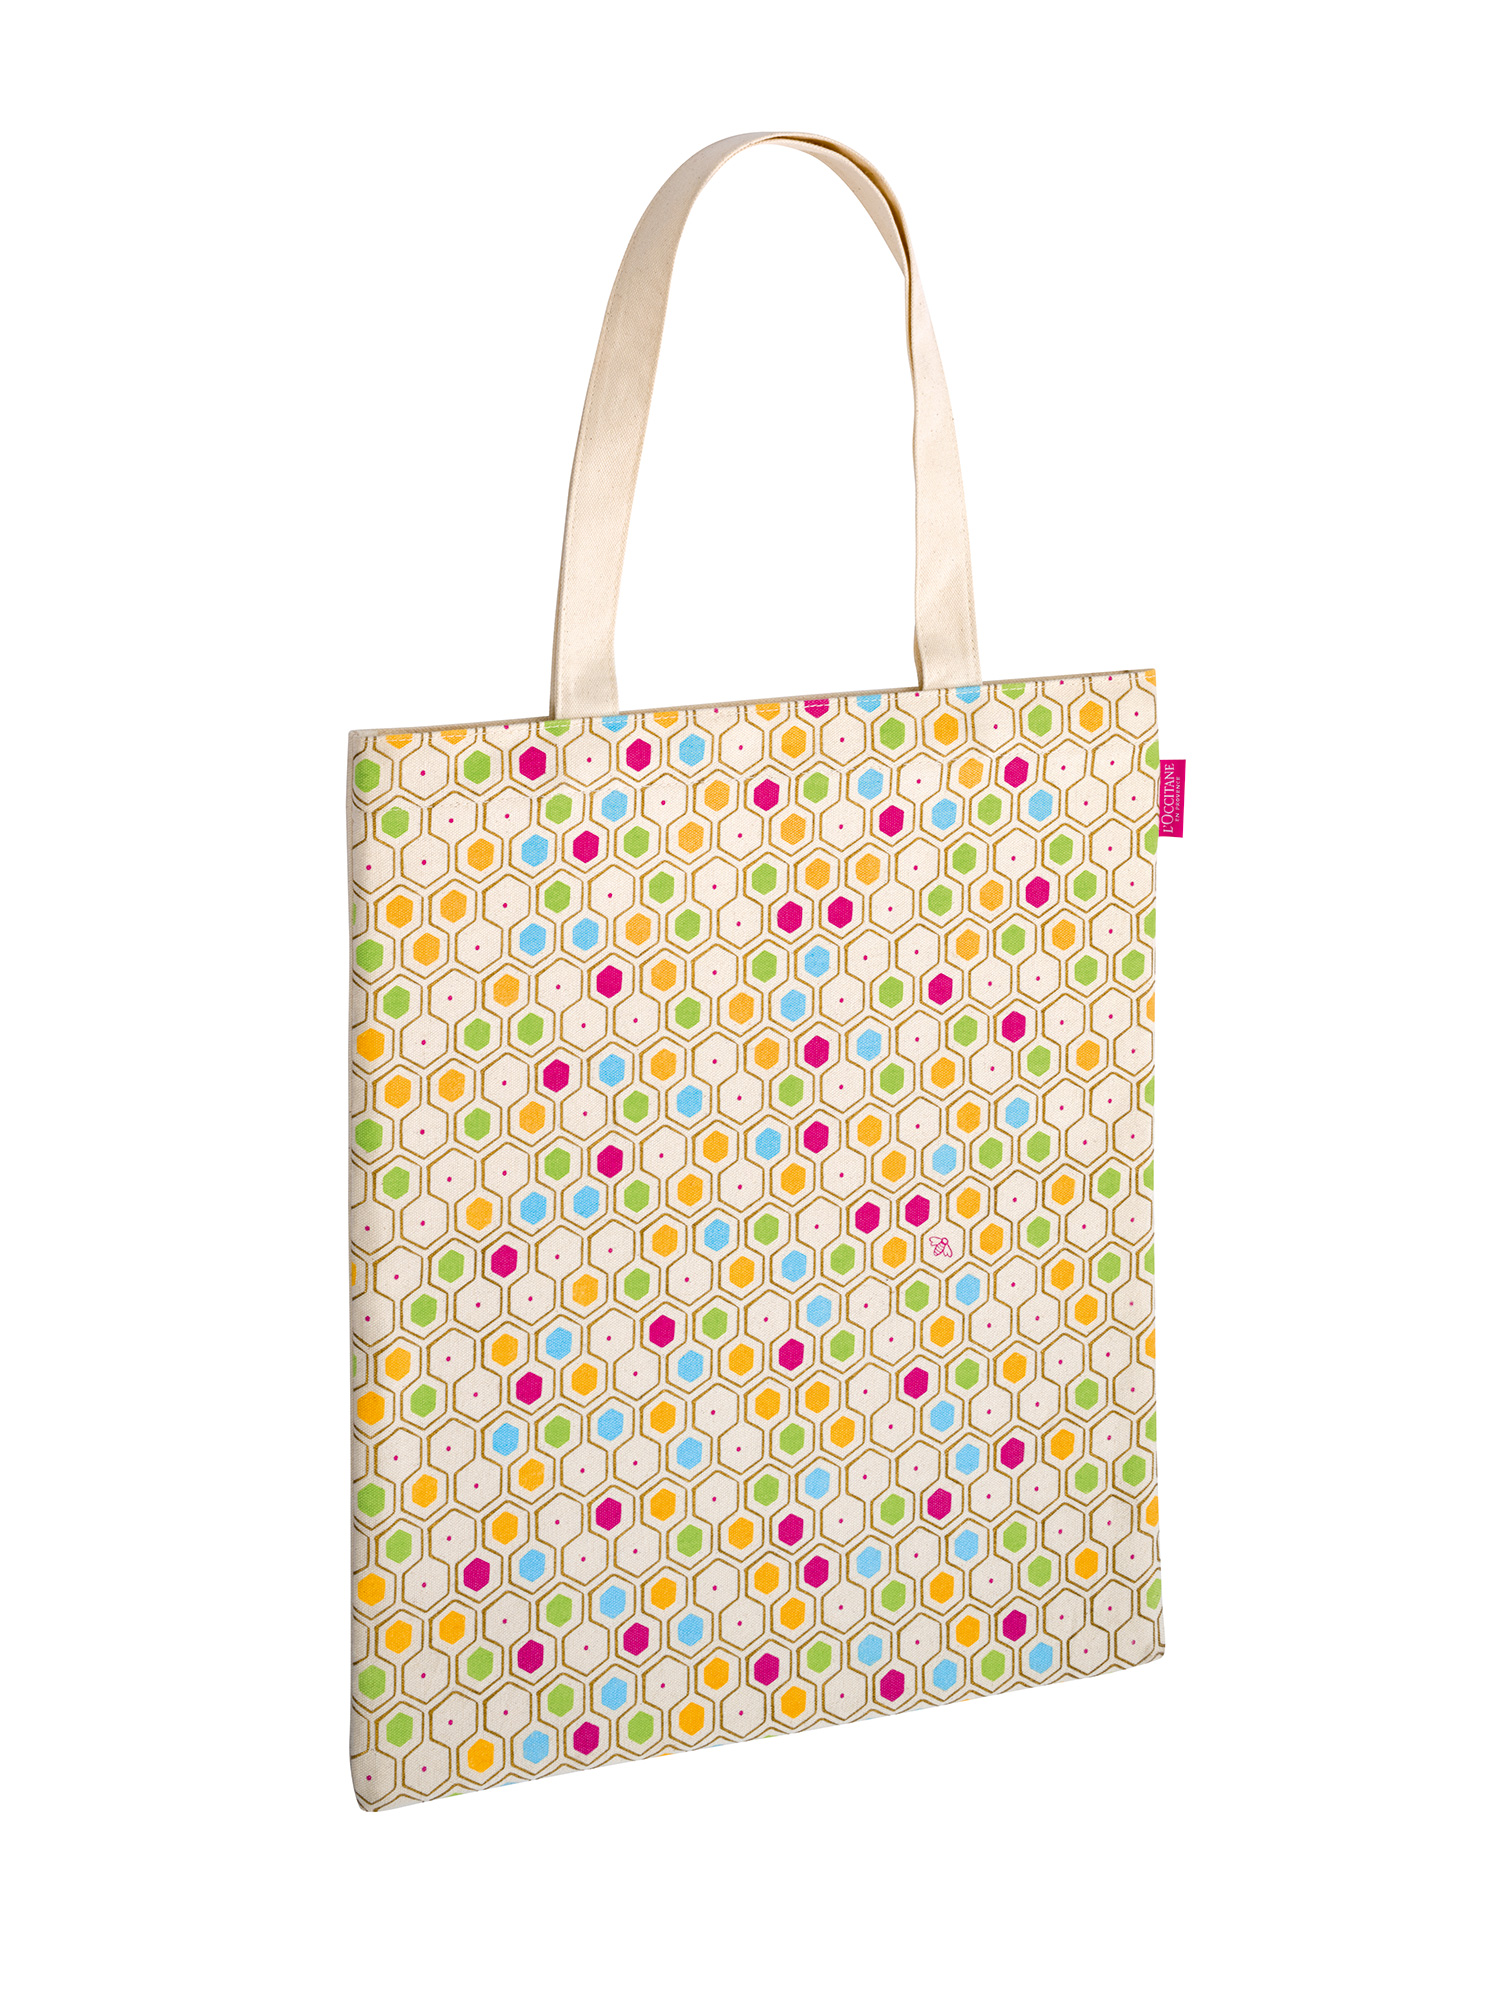 Limited-Edition-2016-Shea-Butter-tote-bag